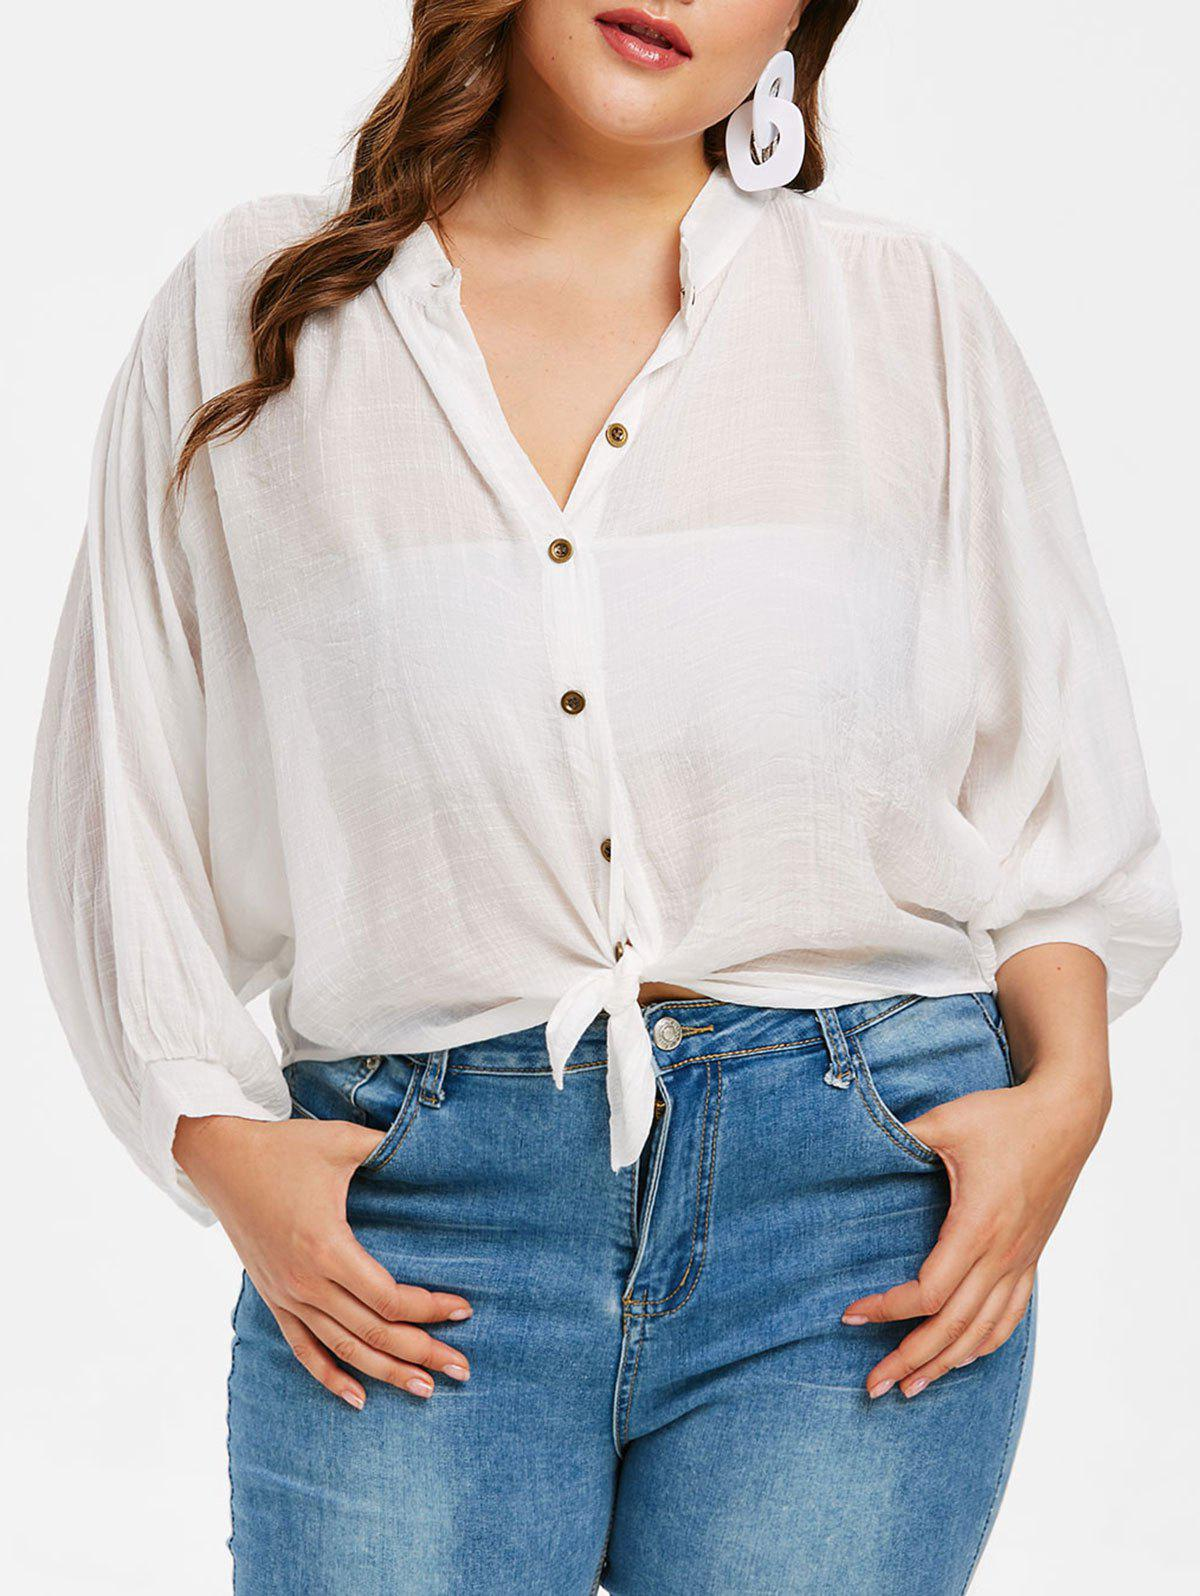 158b0c9a90c Button Up Plus Size Puff Sleeve Shirt - One Size. rosegal